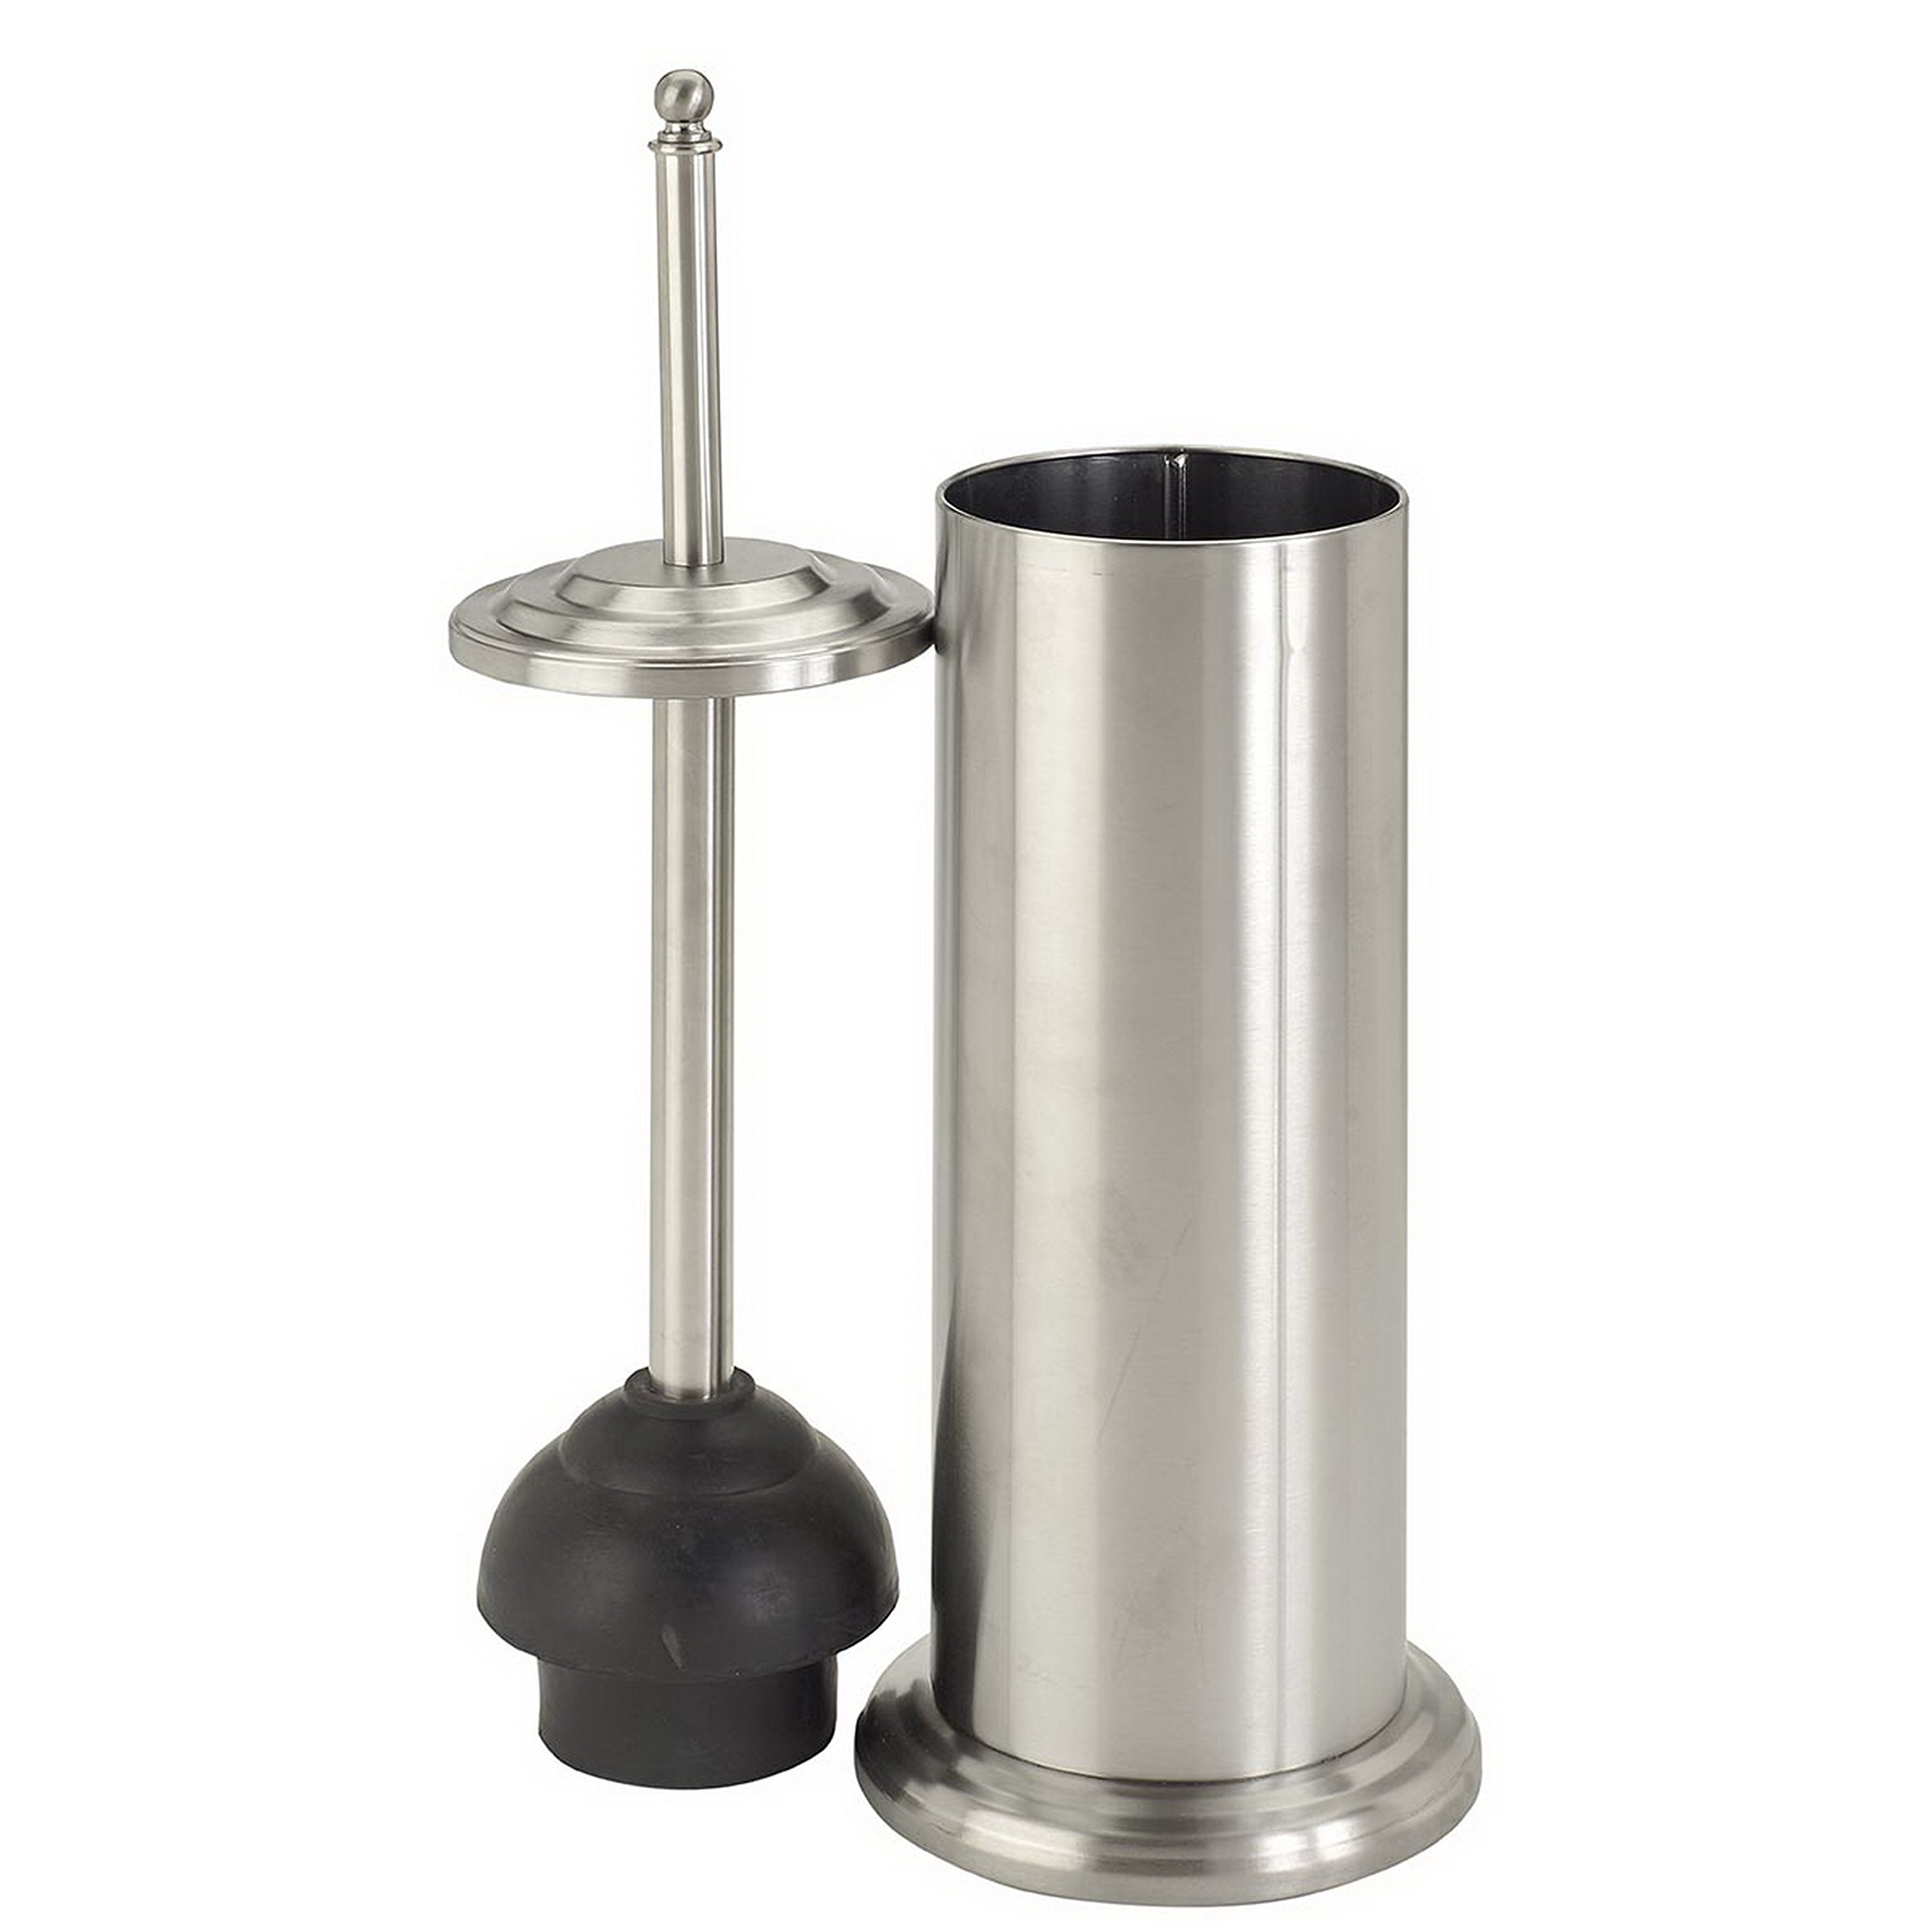 Bath Bliss Cylinder Free Standing Toilet Plunger & Holder, Water & Rust Resistant, Decorative, Stainless Steel by Bath Bliss